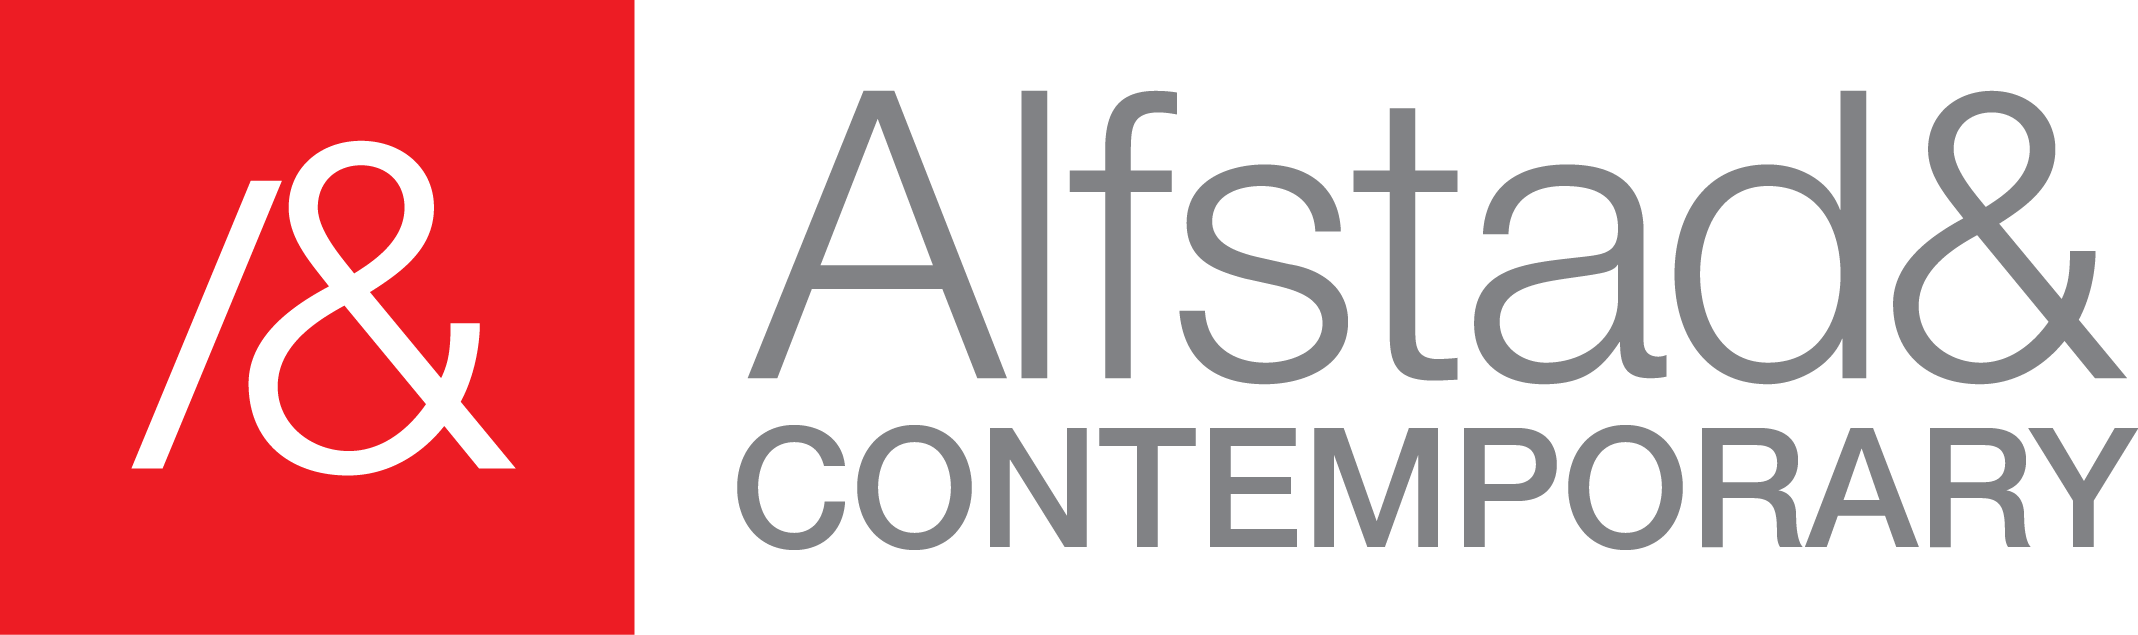 alfstadand_contemporary_logo